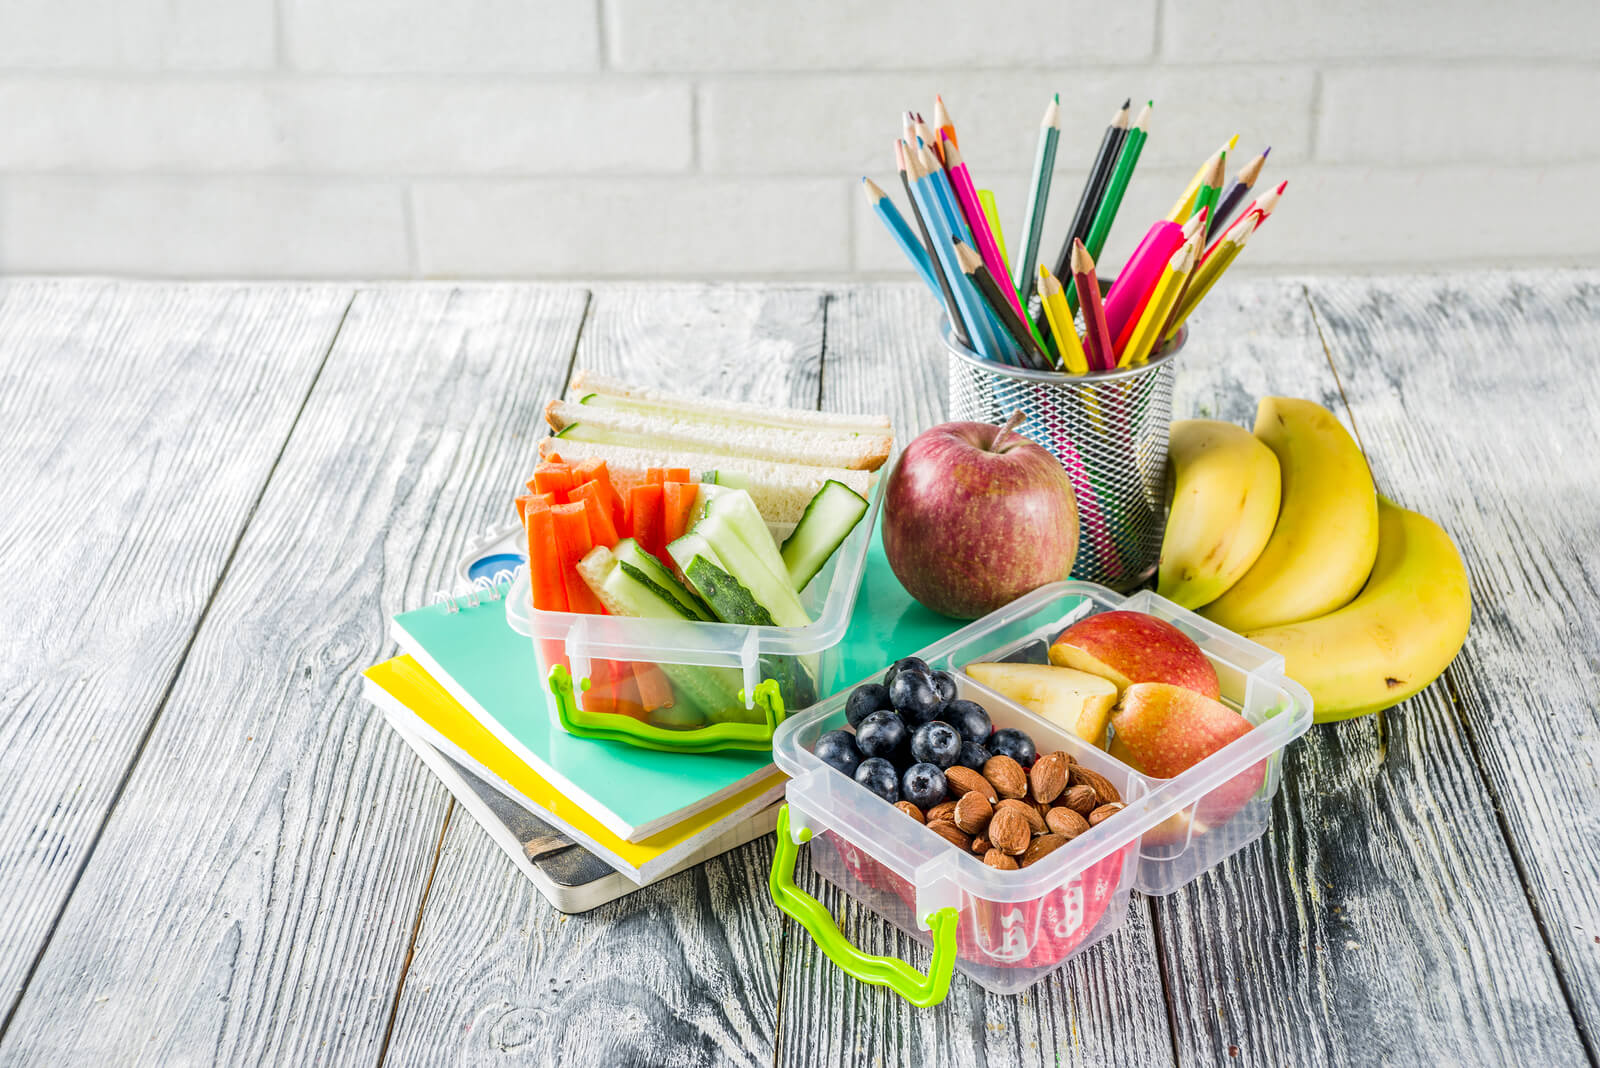 bigstock Healthy School Lunch Box 314080888